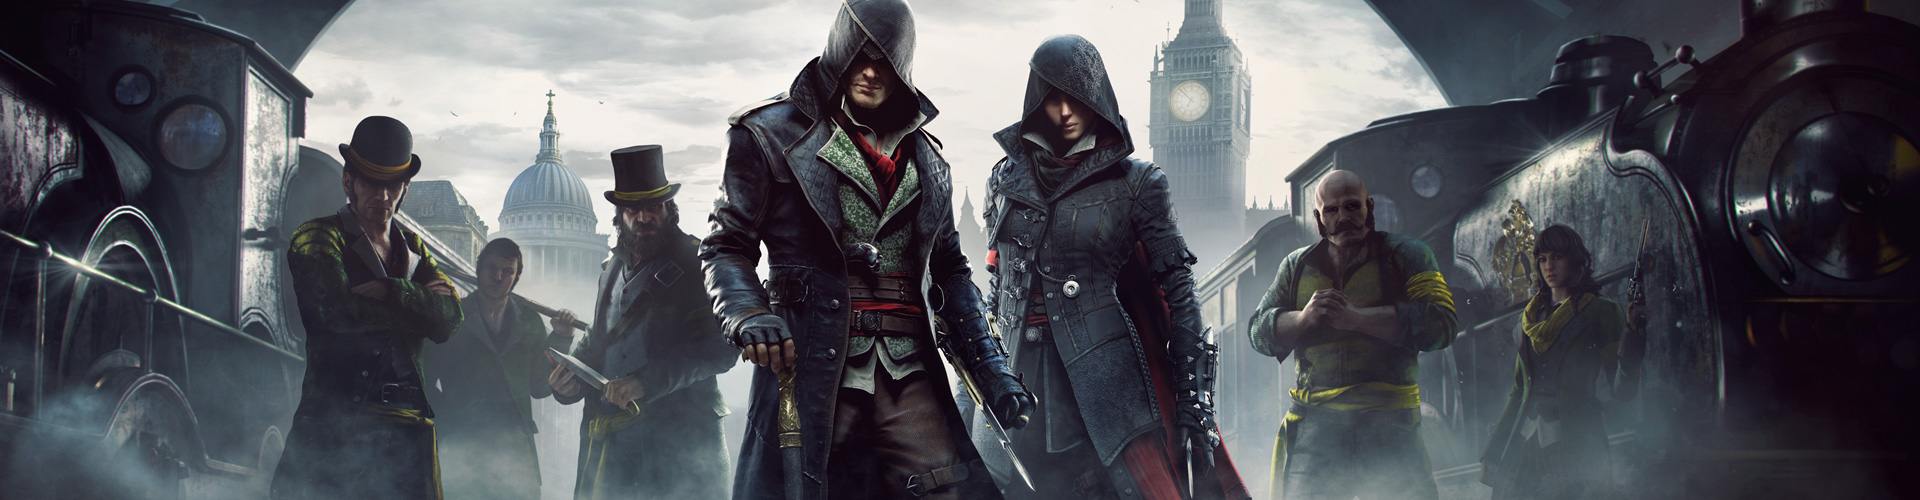 Assassin's Creed: Syndicate im Test - Update zur PC-Fassung